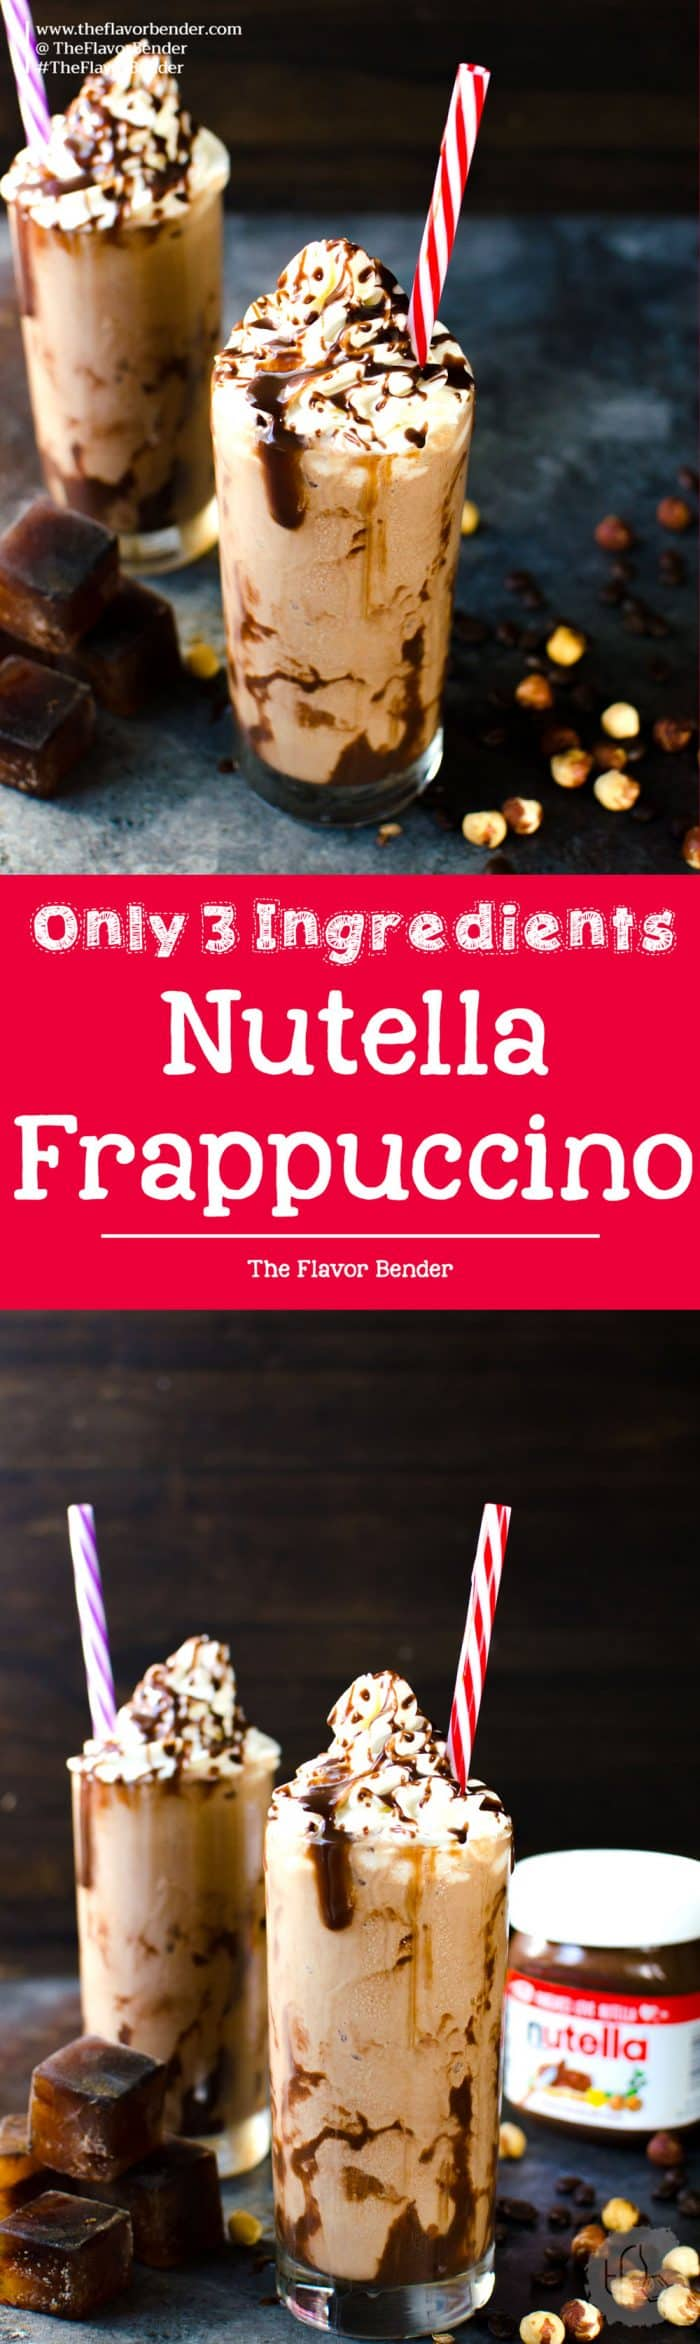 3 ingredient Nutella Frappuccino - This amazing Nutella Coffee Slushie is a cross between an icy frappuccino and a creamy milk shake, but with the added delicious hazelnut cocoa flavor of Nutella and a nice strong hit of coffee! Mornings have never been this good!